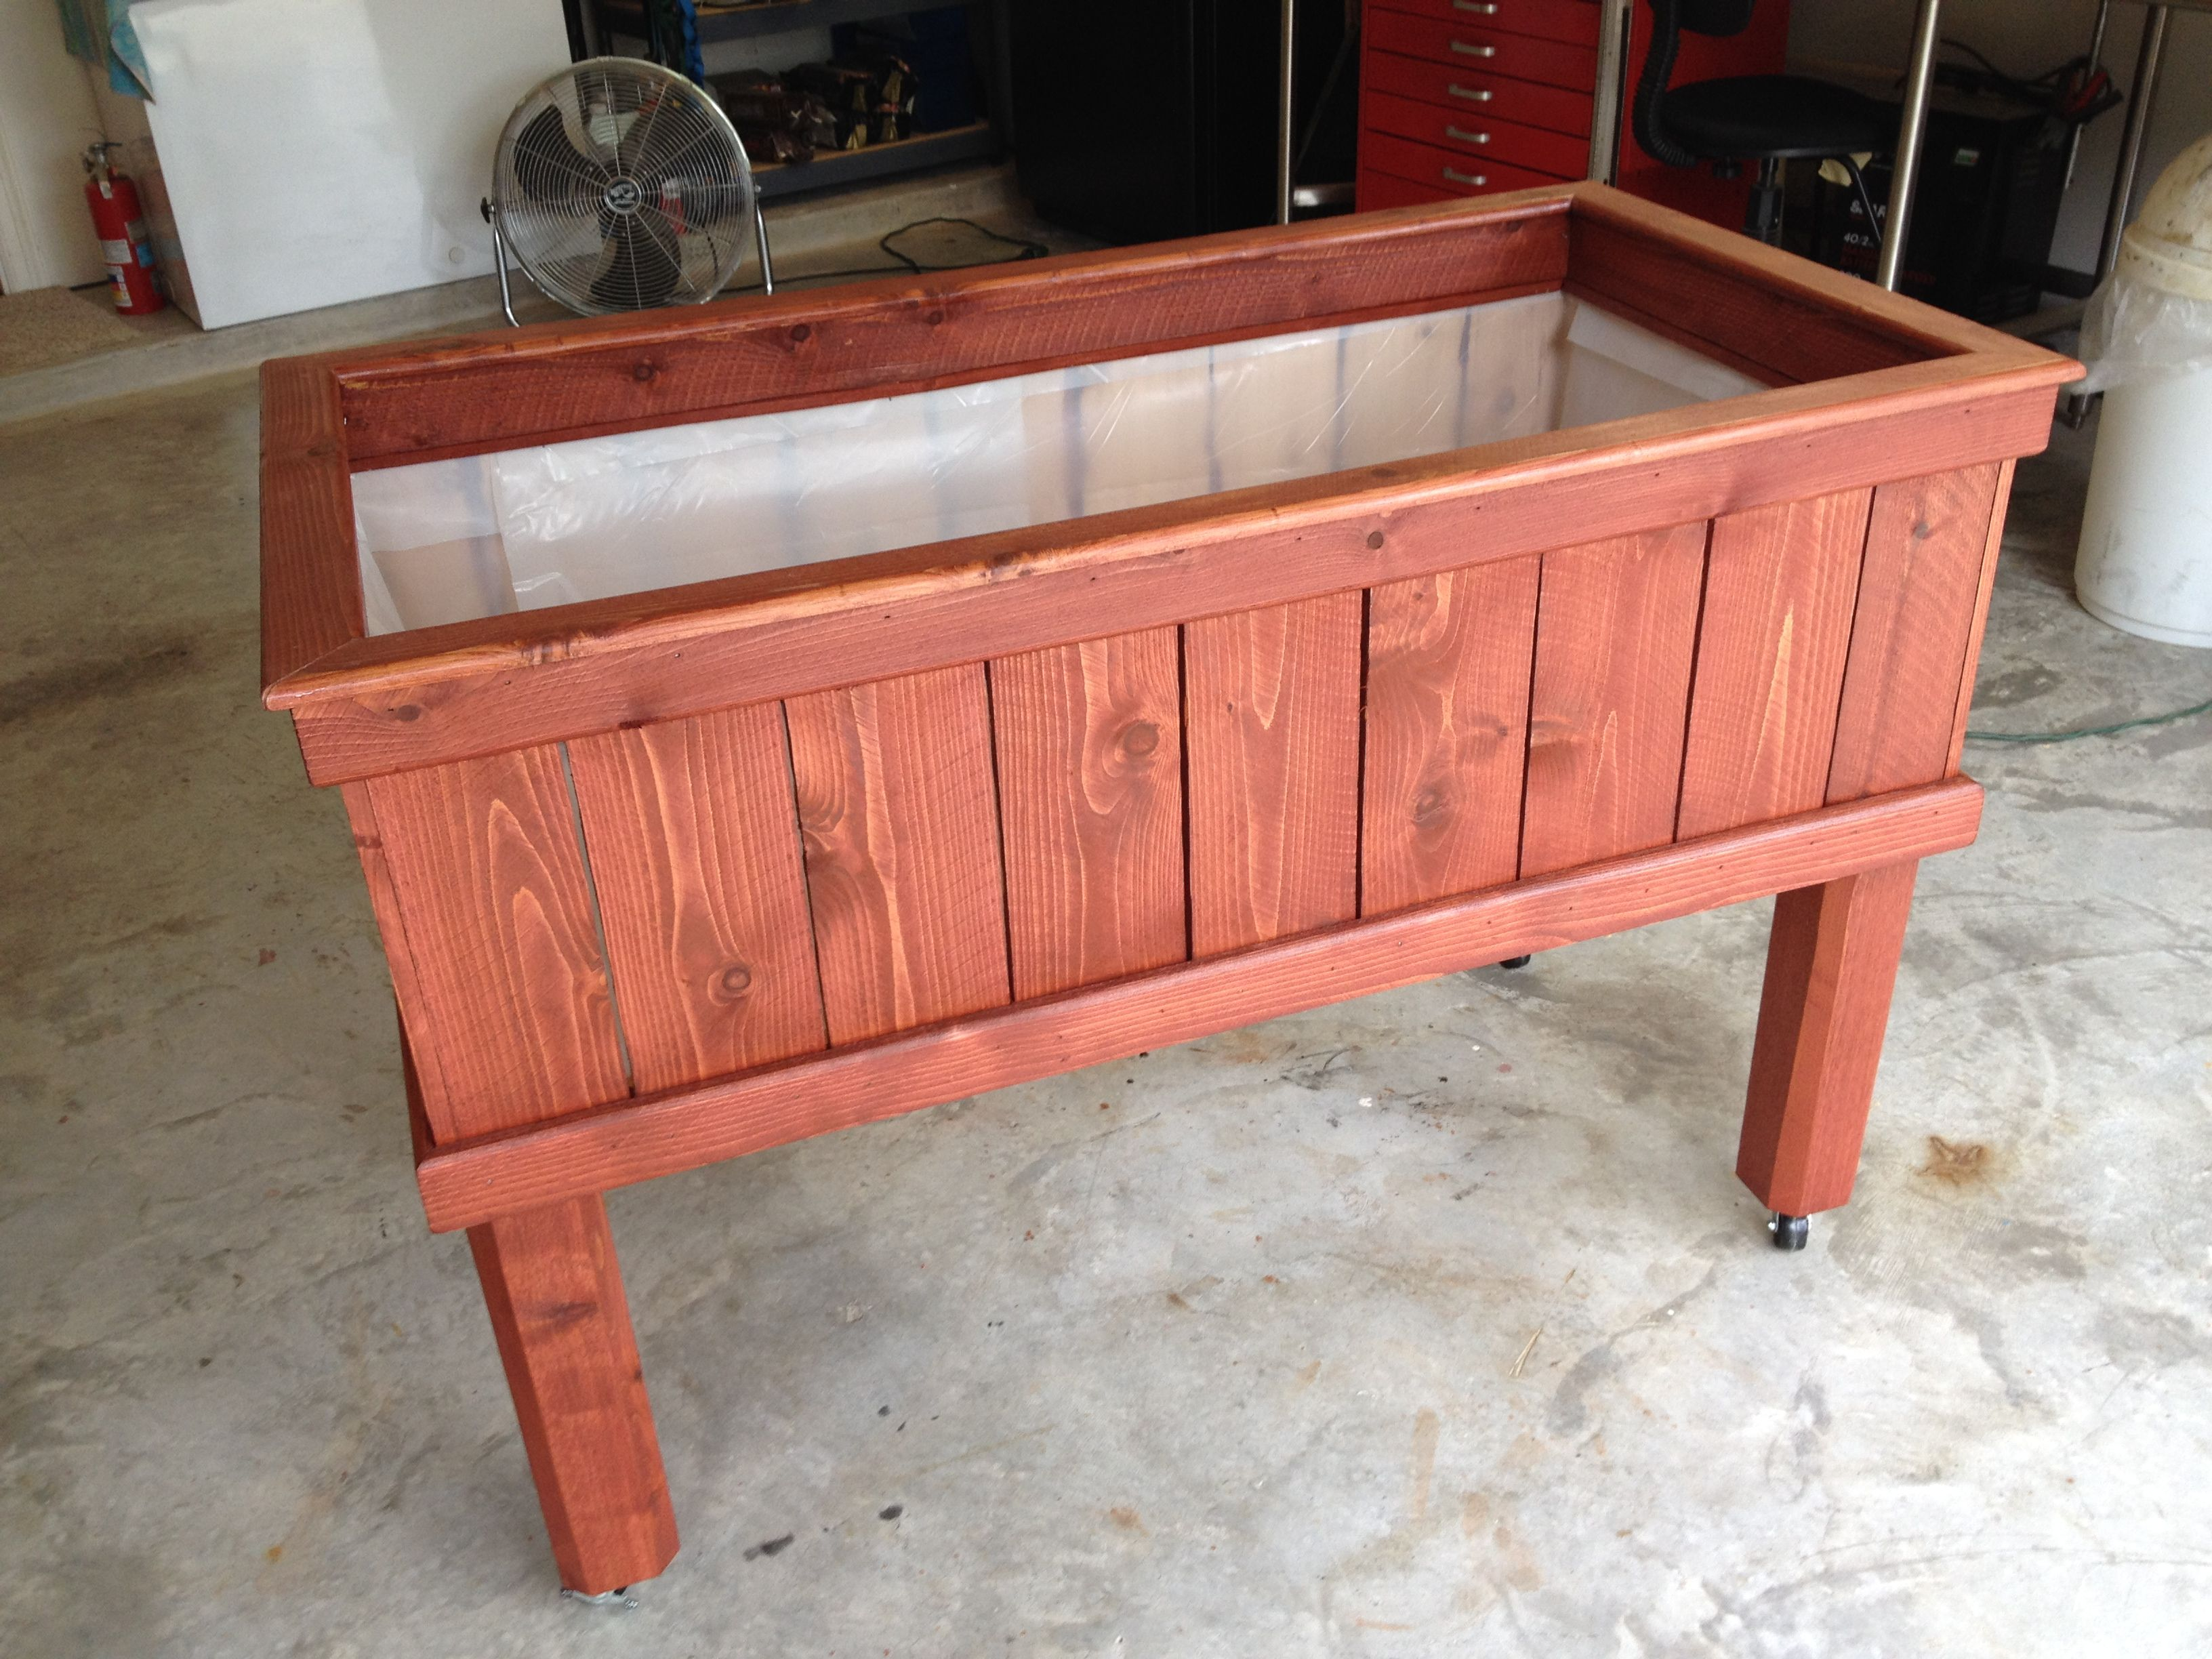 Finished Planter Box   Waiting For Trellis. Legs Have Caster Wheels So It  Can Be